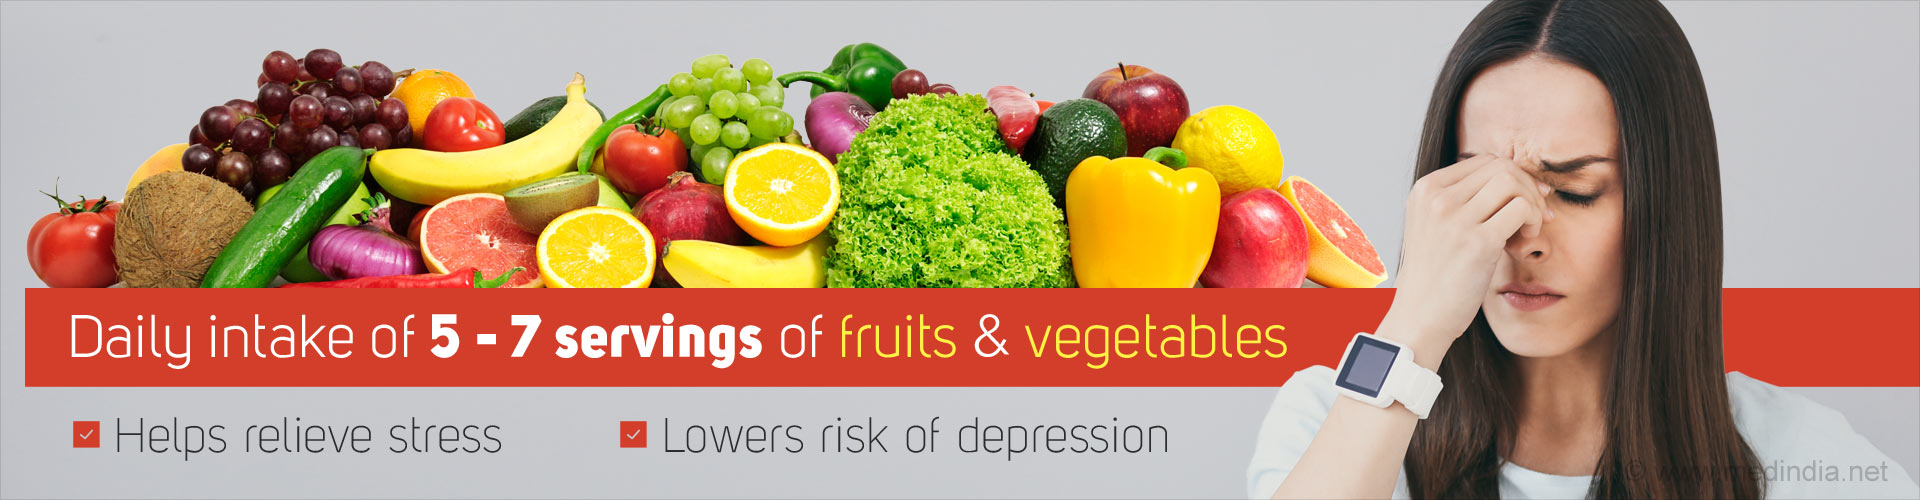 Fruits & Veggies, the Tasty Tools to Beat Stress in Women